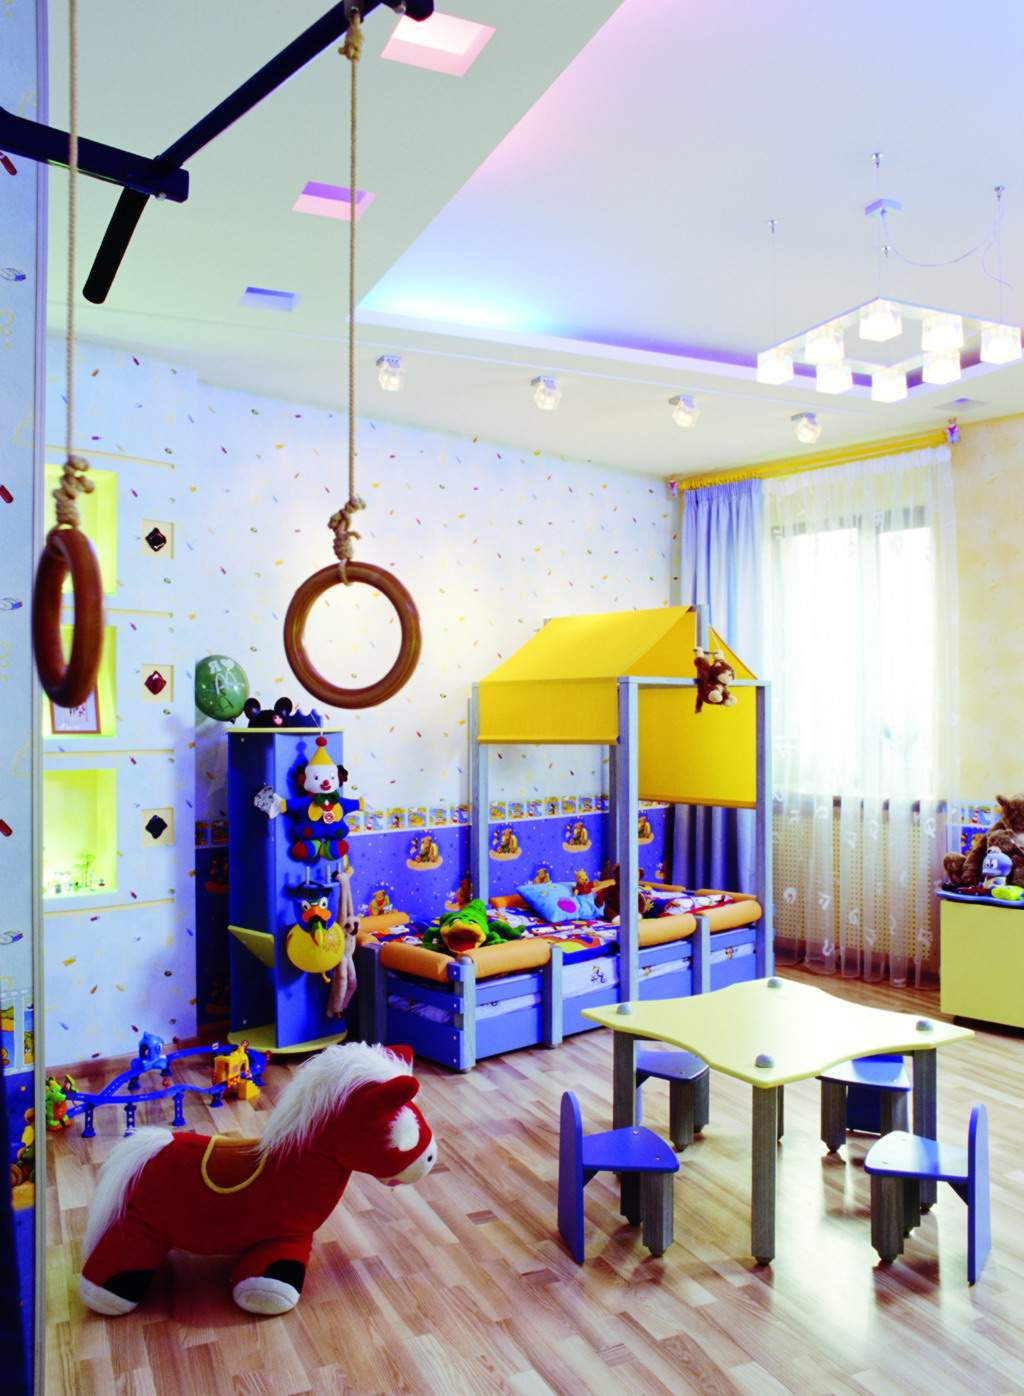 15 creative kids bedroom decorating ideas - Kids bedroom decoration ideas ...